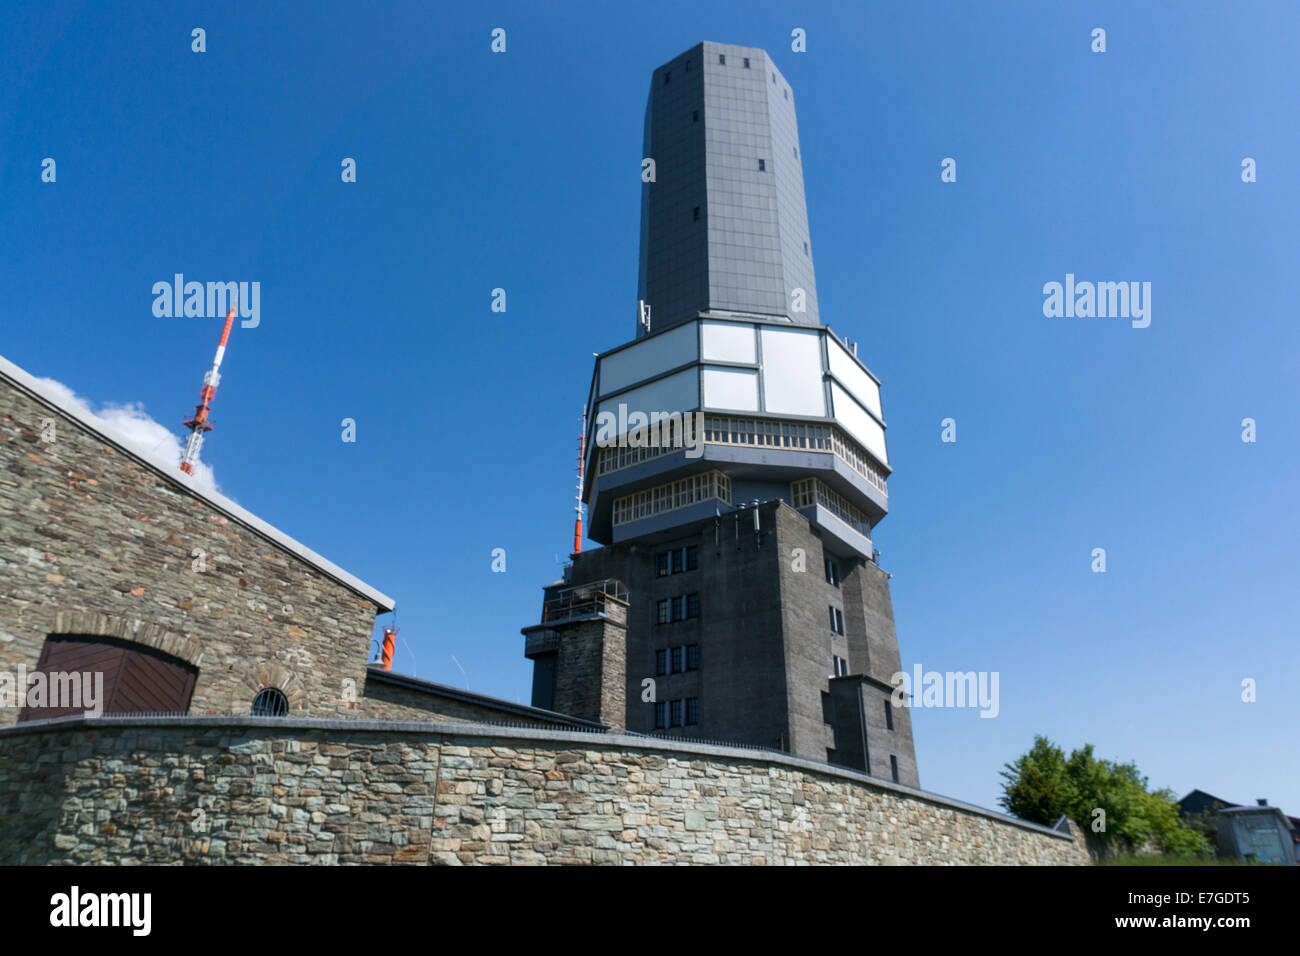 Germany: Transmitter masts and observation tower at Großer Feldberg, Hesse. Photo from 8th June 2014. - Stock Image